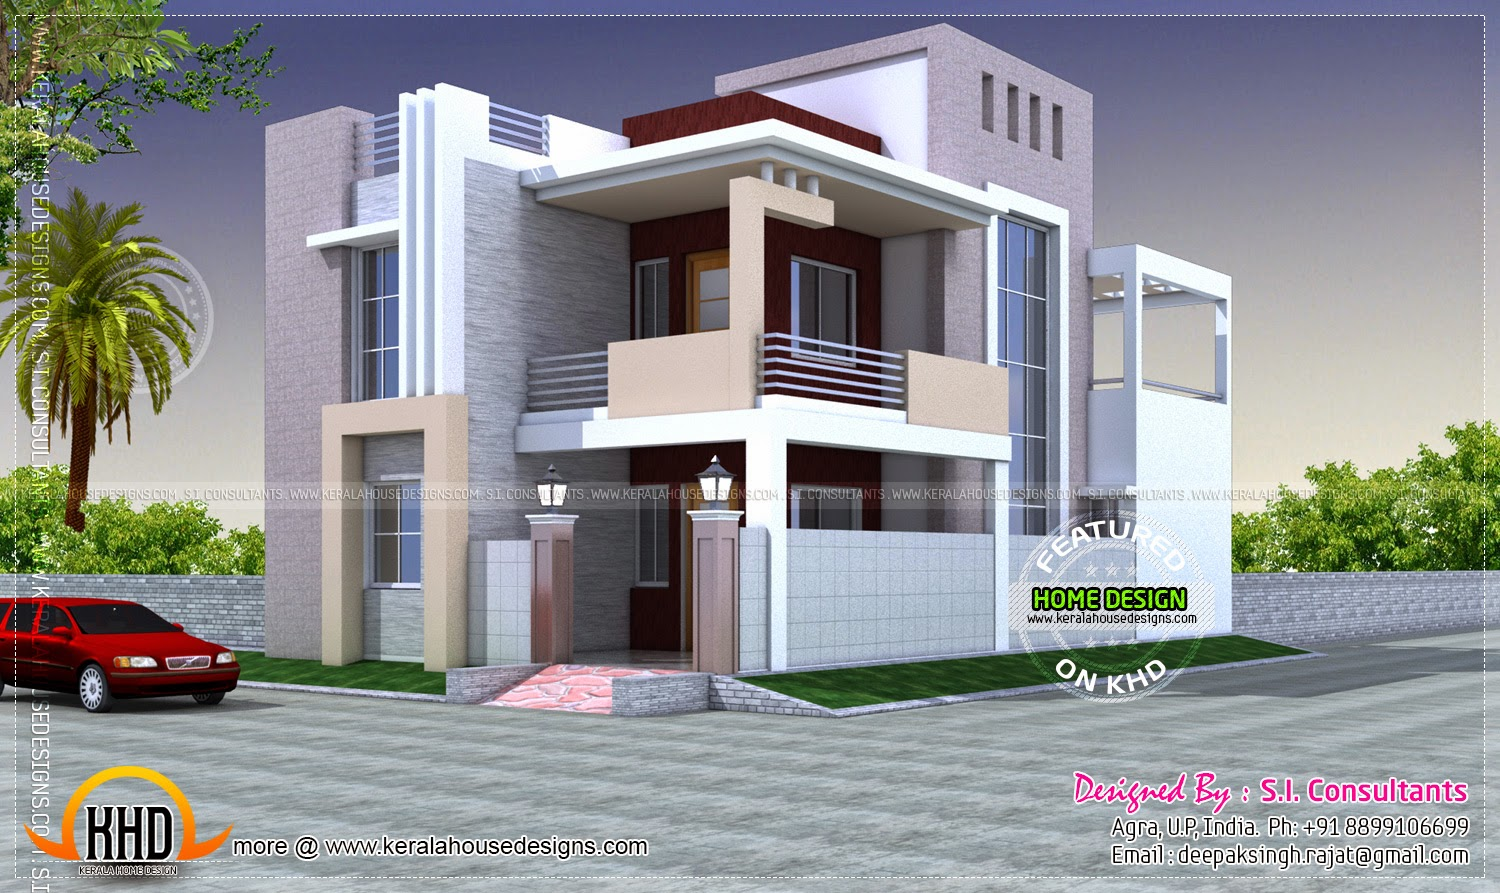 House exterior elevation modern style kerala home design for Home designs exterior